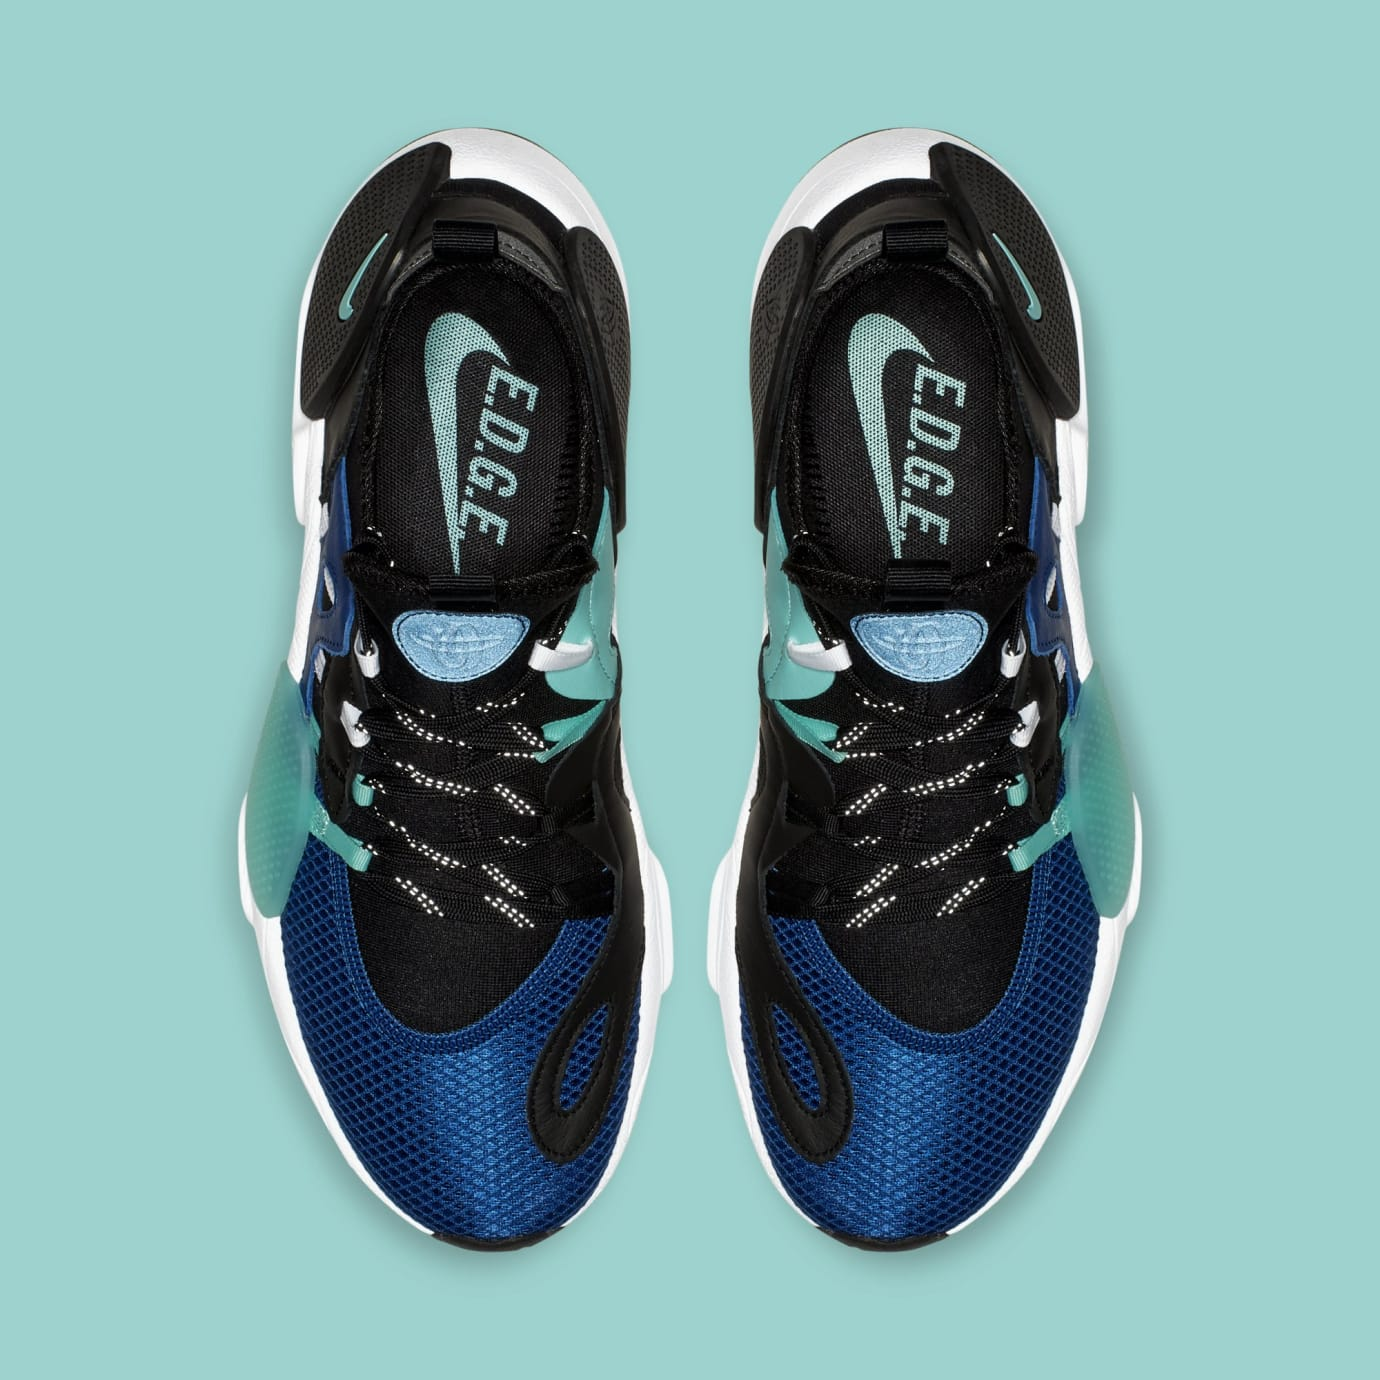 Nike Huarache E.D.G.E. TXT 'Indigo Force/Black' BQ5205-400 (Top)